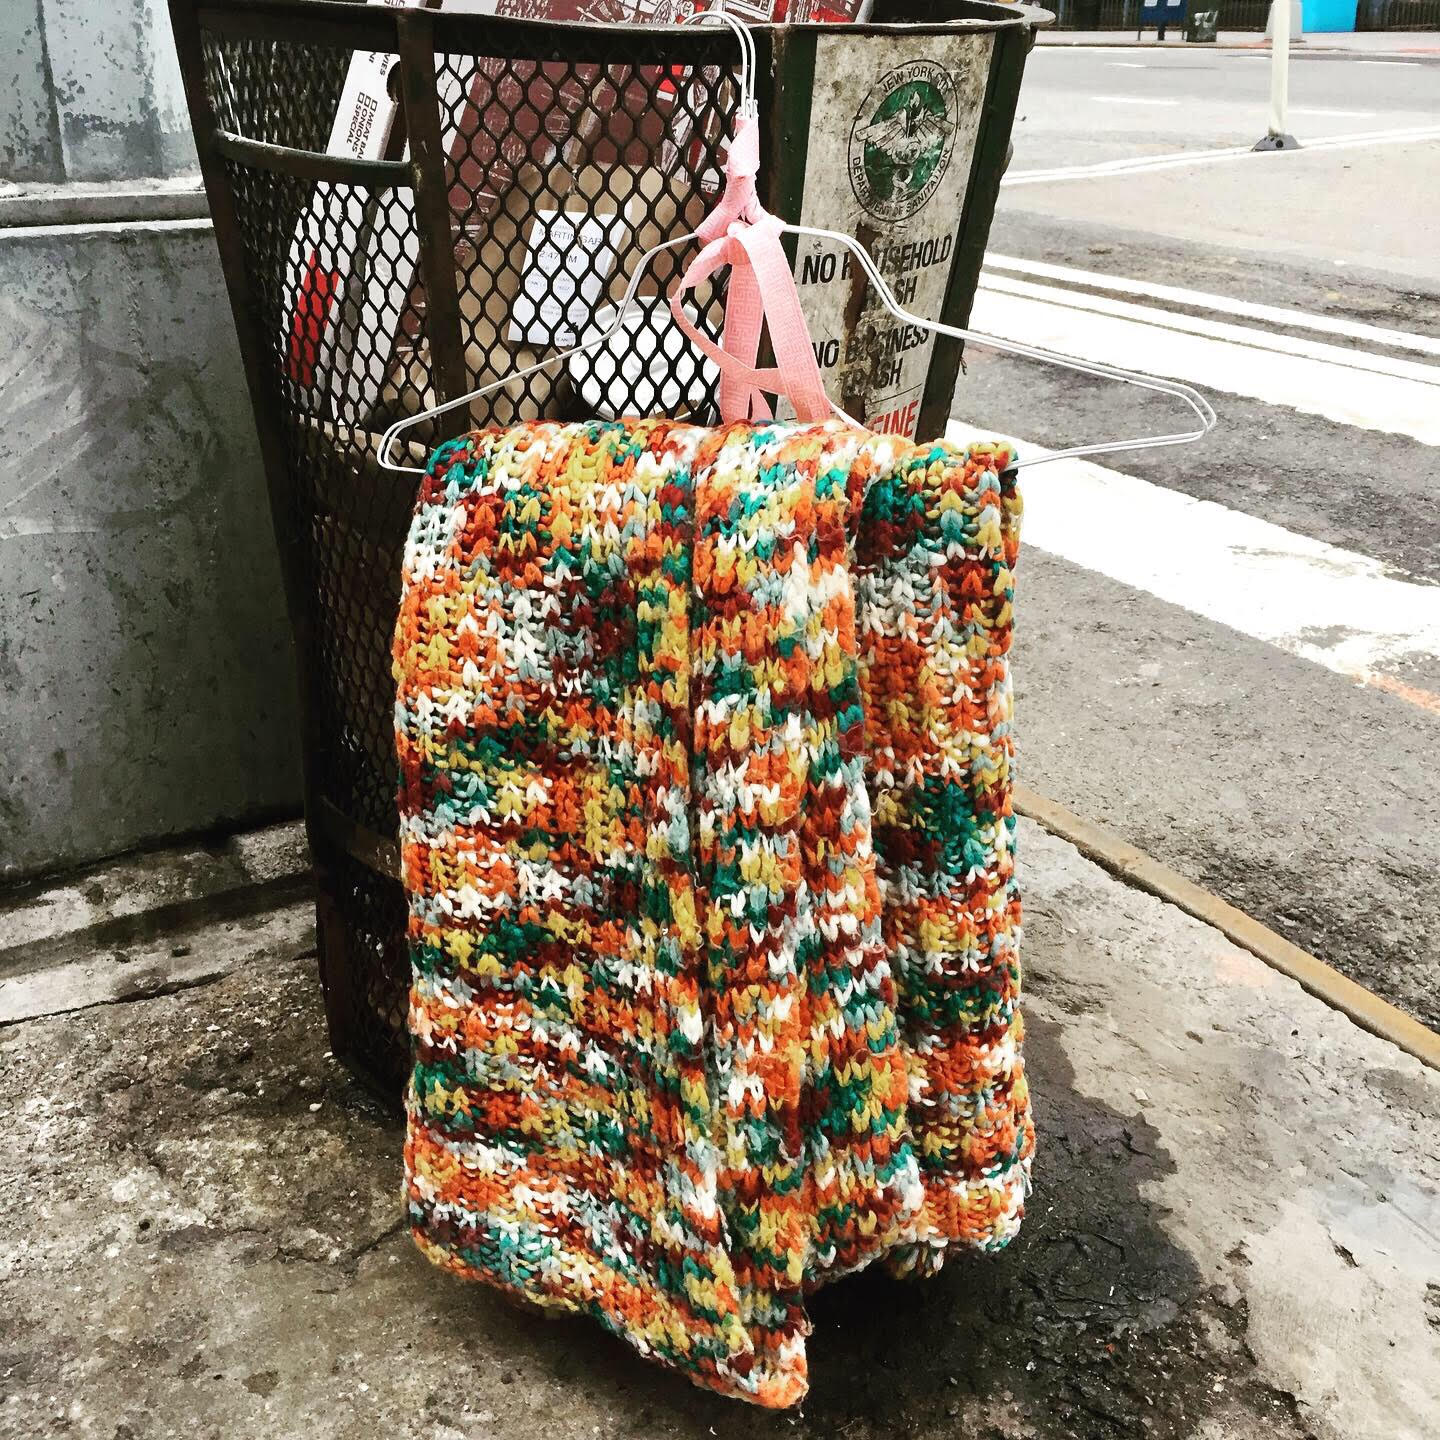 knitting is a popular hobby in new york city